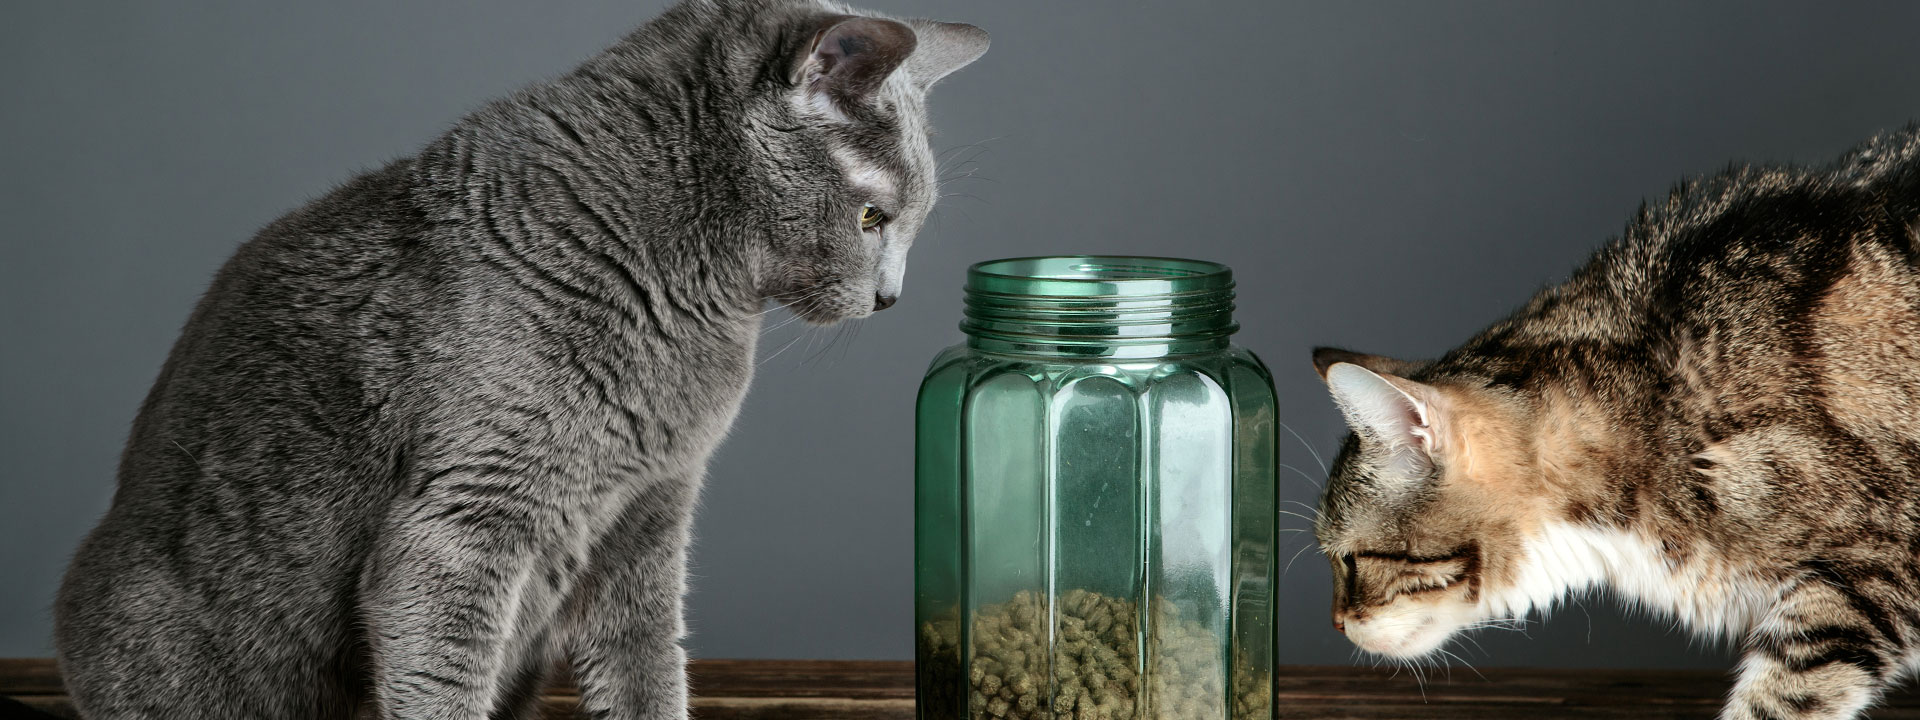 Two cats looking at pet food